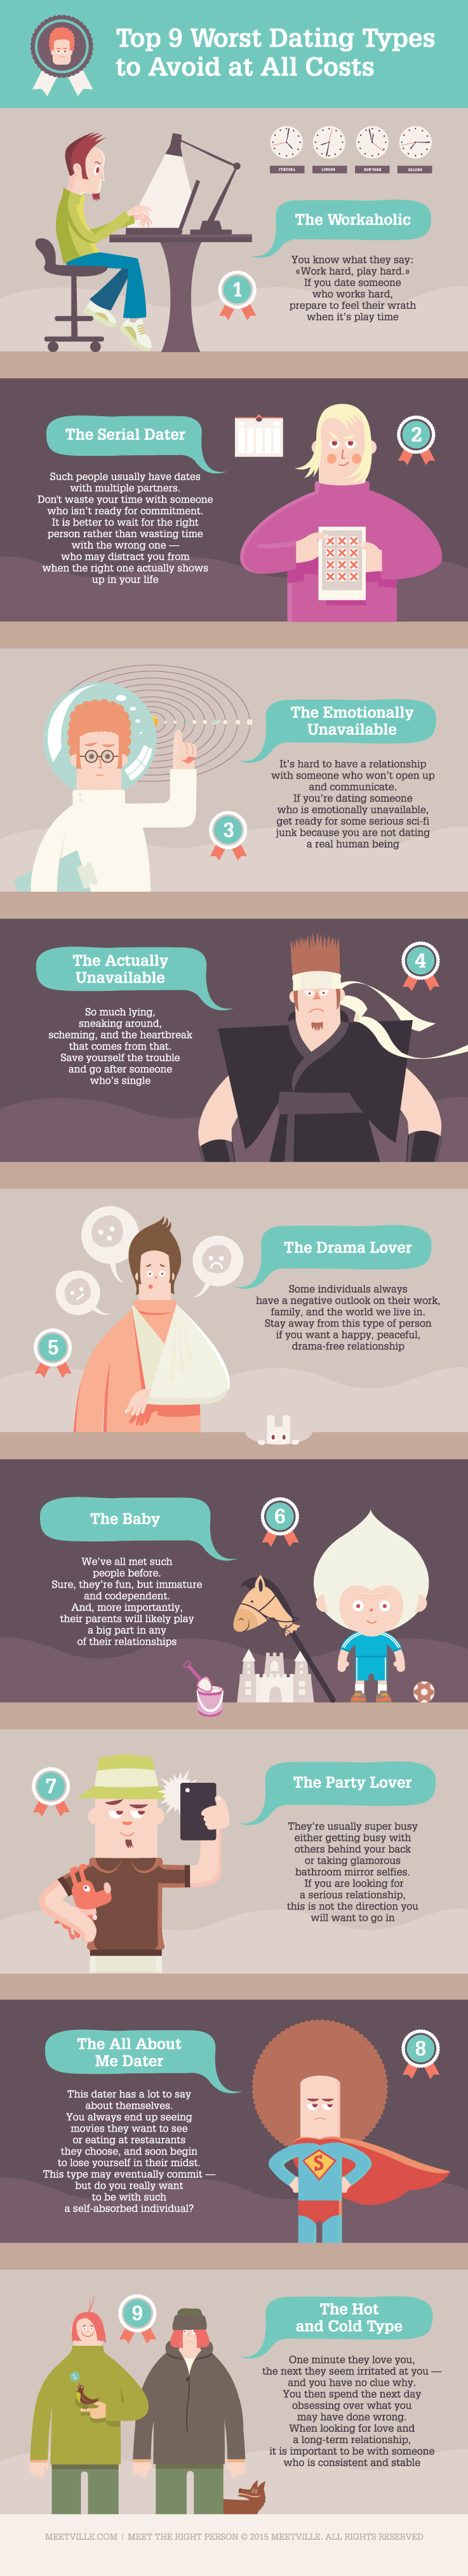 Top 9 Worst Dating Types to Avoid at All Costs Infographics dating-singles-meetville-matchmaking